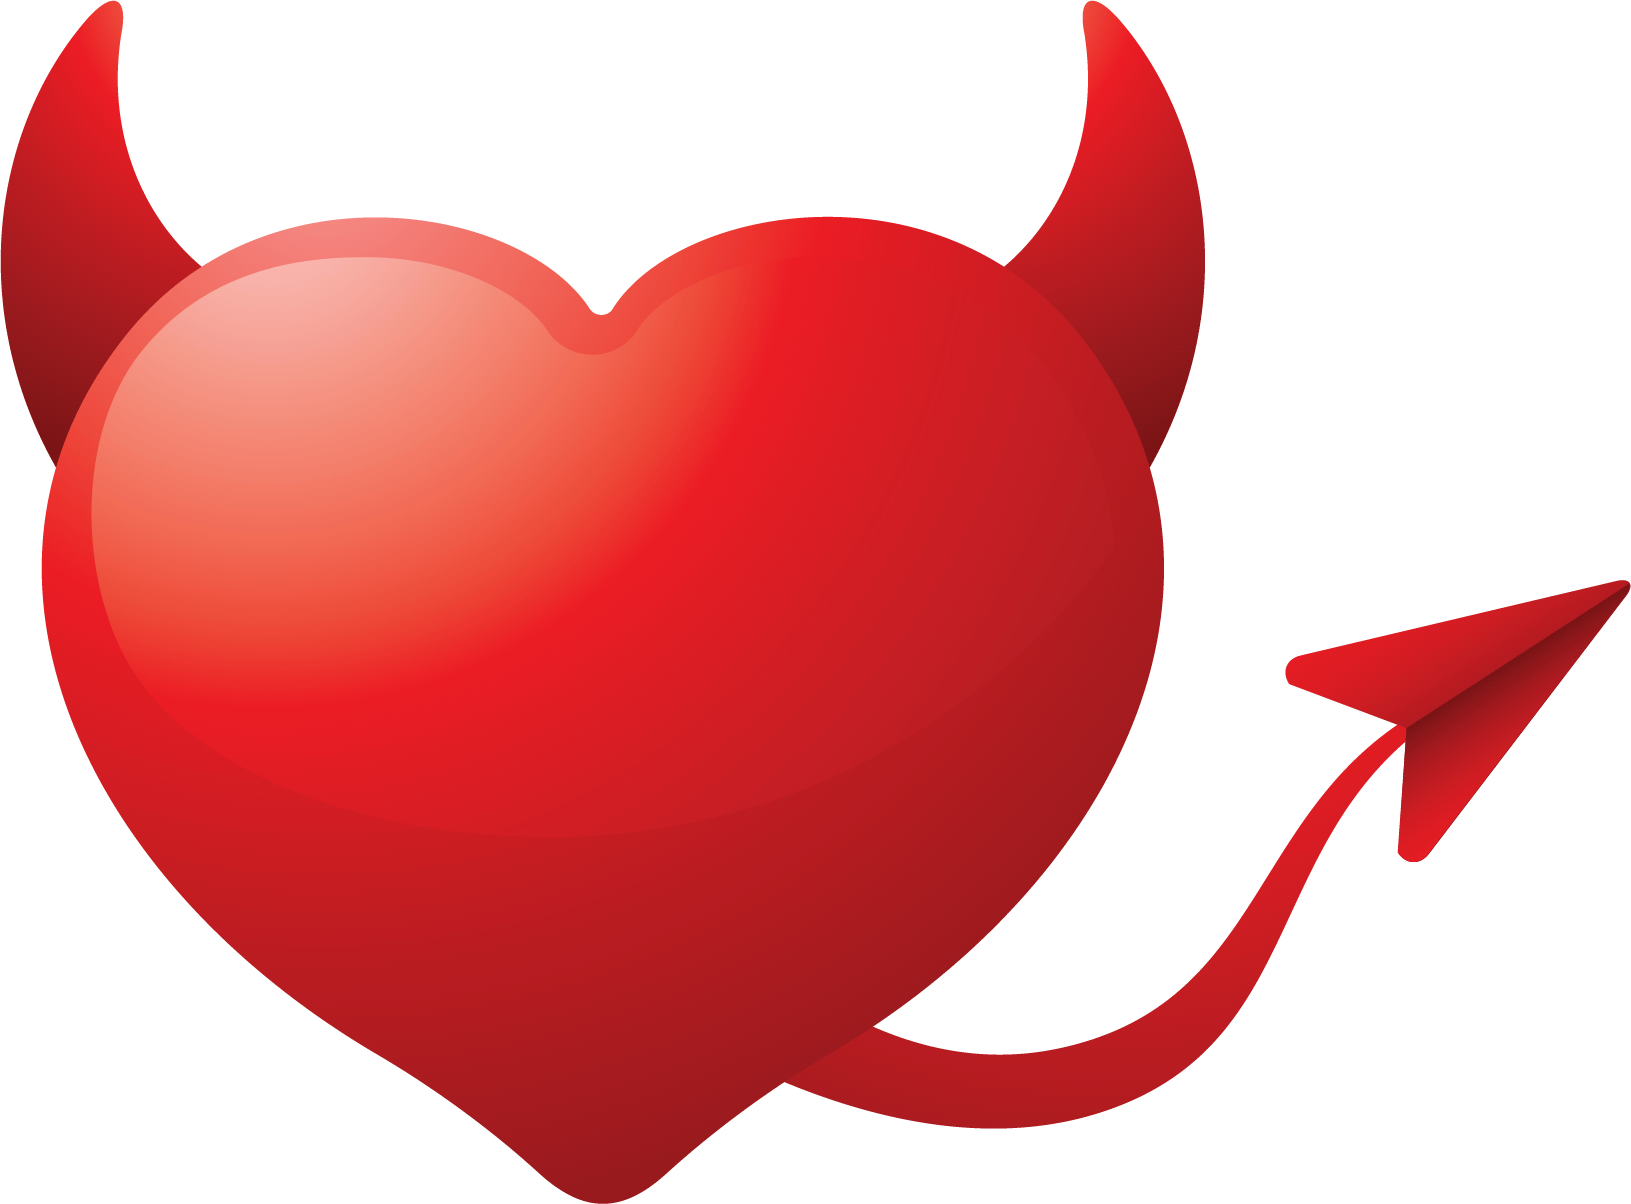 Images for hearts best. Clipart heart body